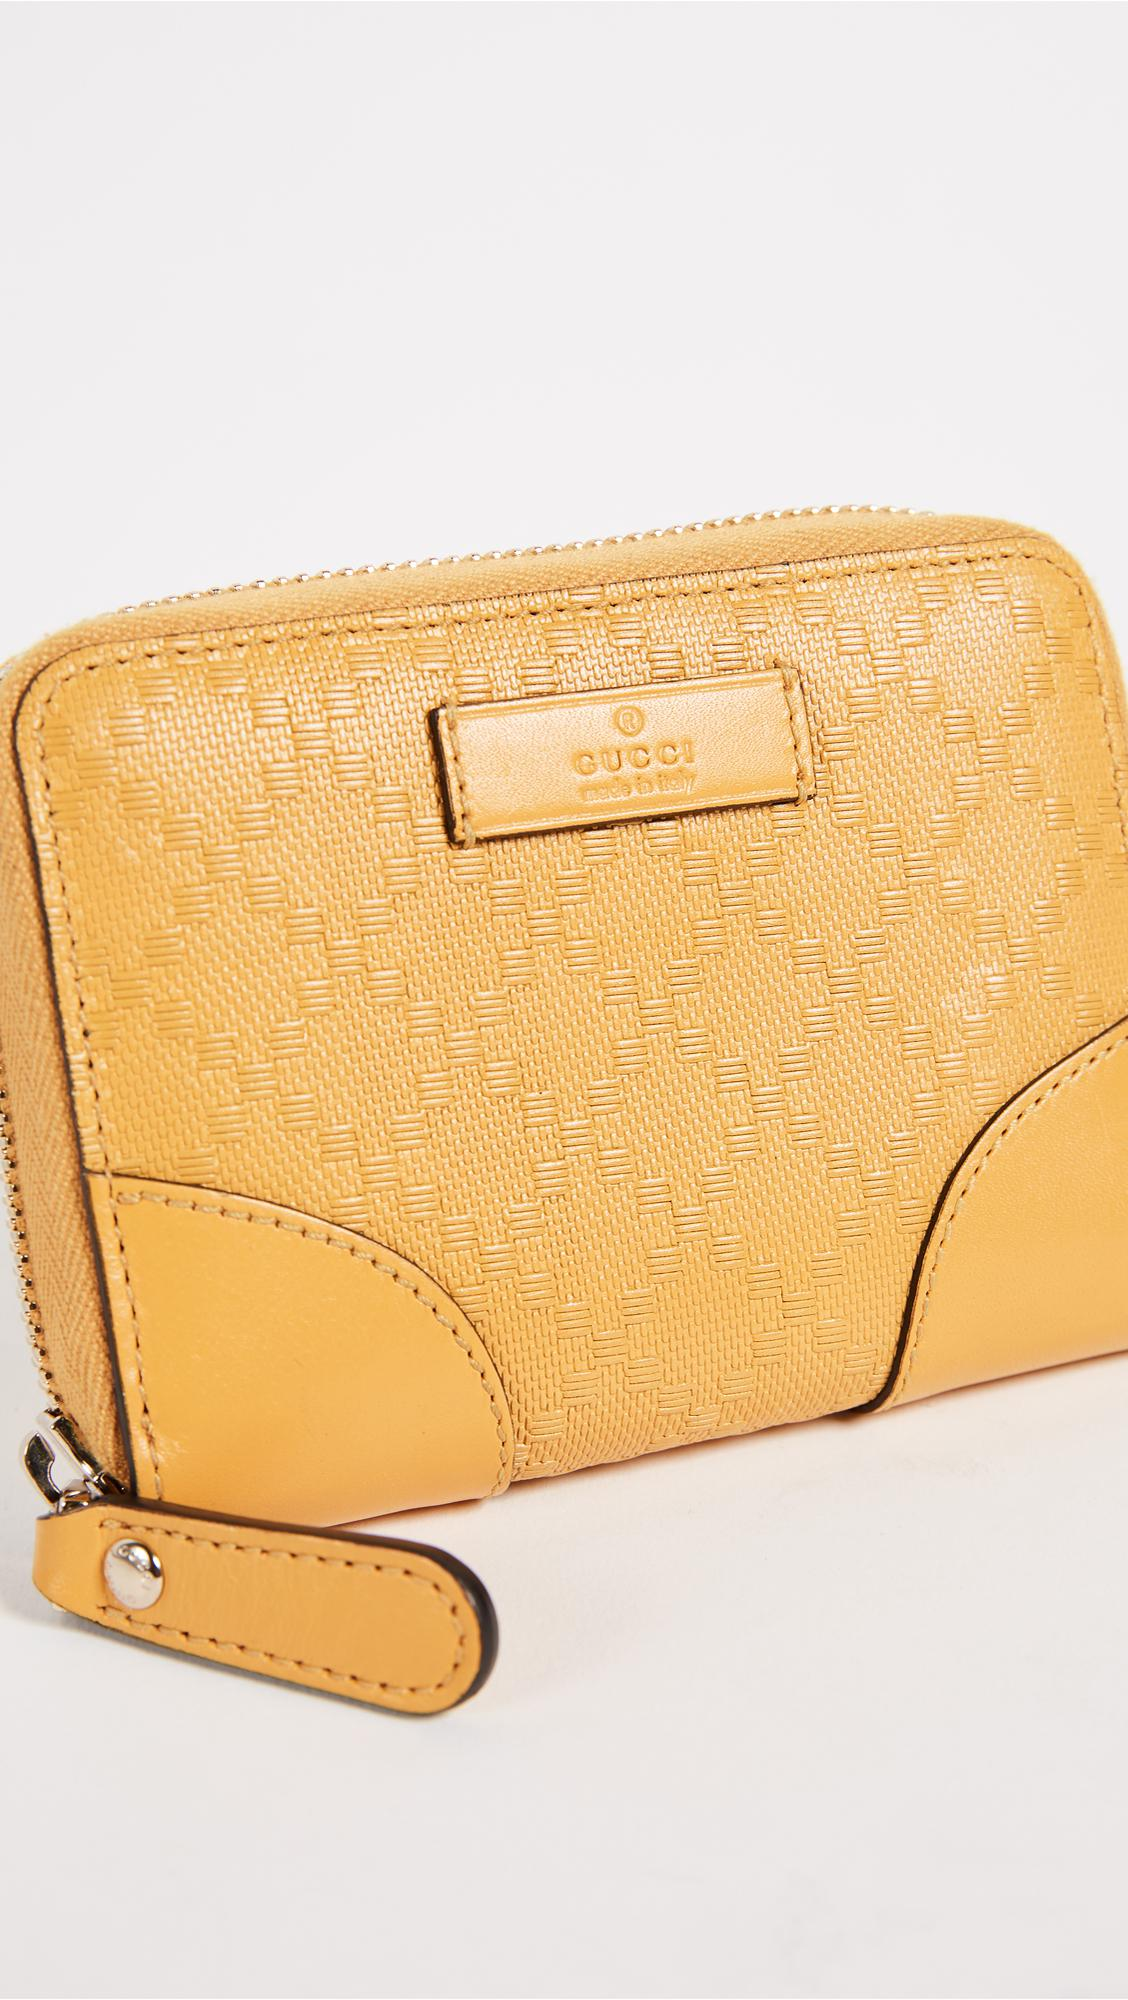 9873d3f4457 Lyst - What Goes Around Comes Around Gucci Yellow Diamante Zip ...